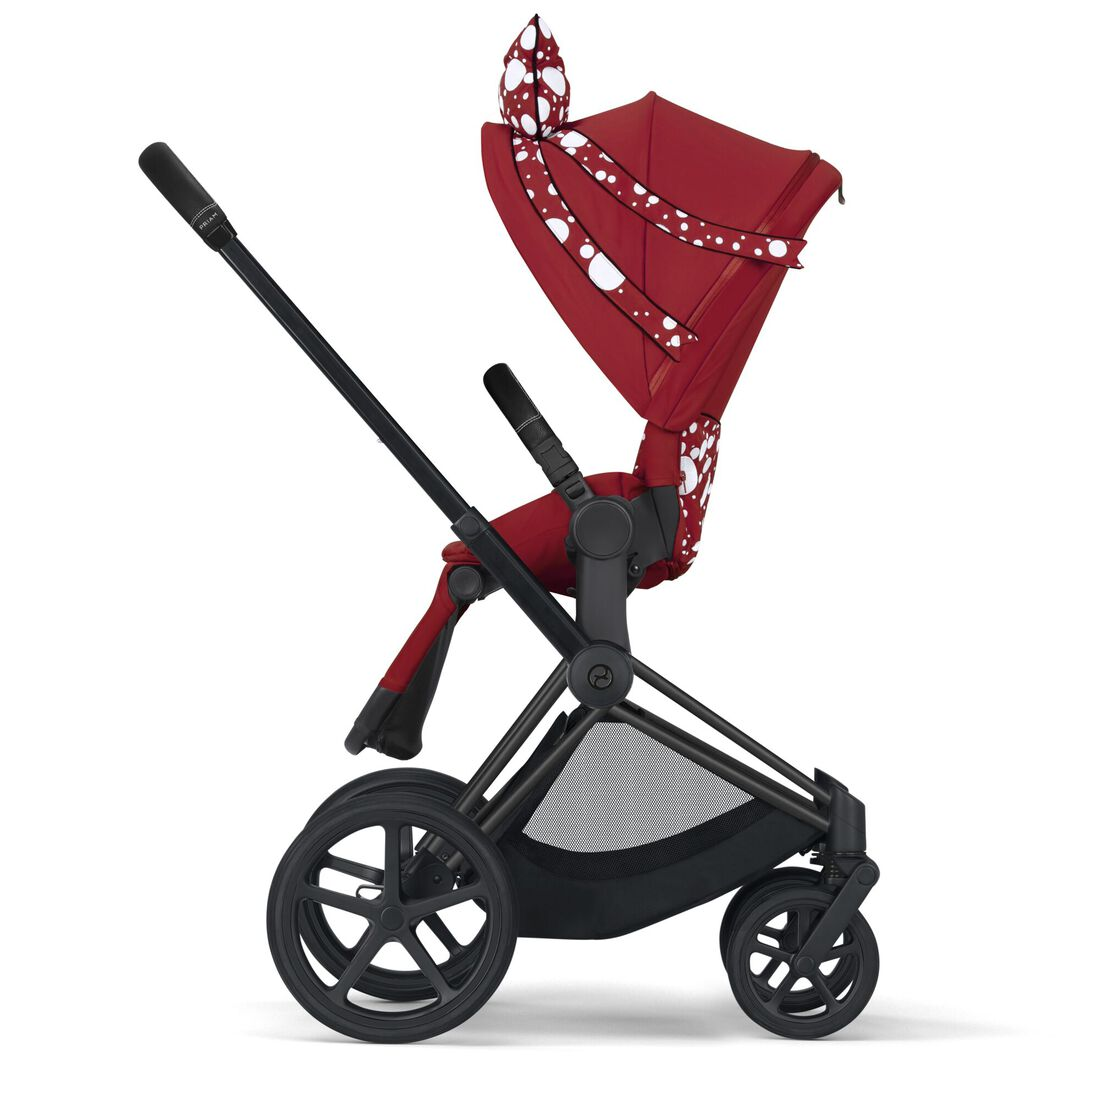 CYBEX Priam Seat Pack - Petticoat Red in Petticoat Red large image number 2